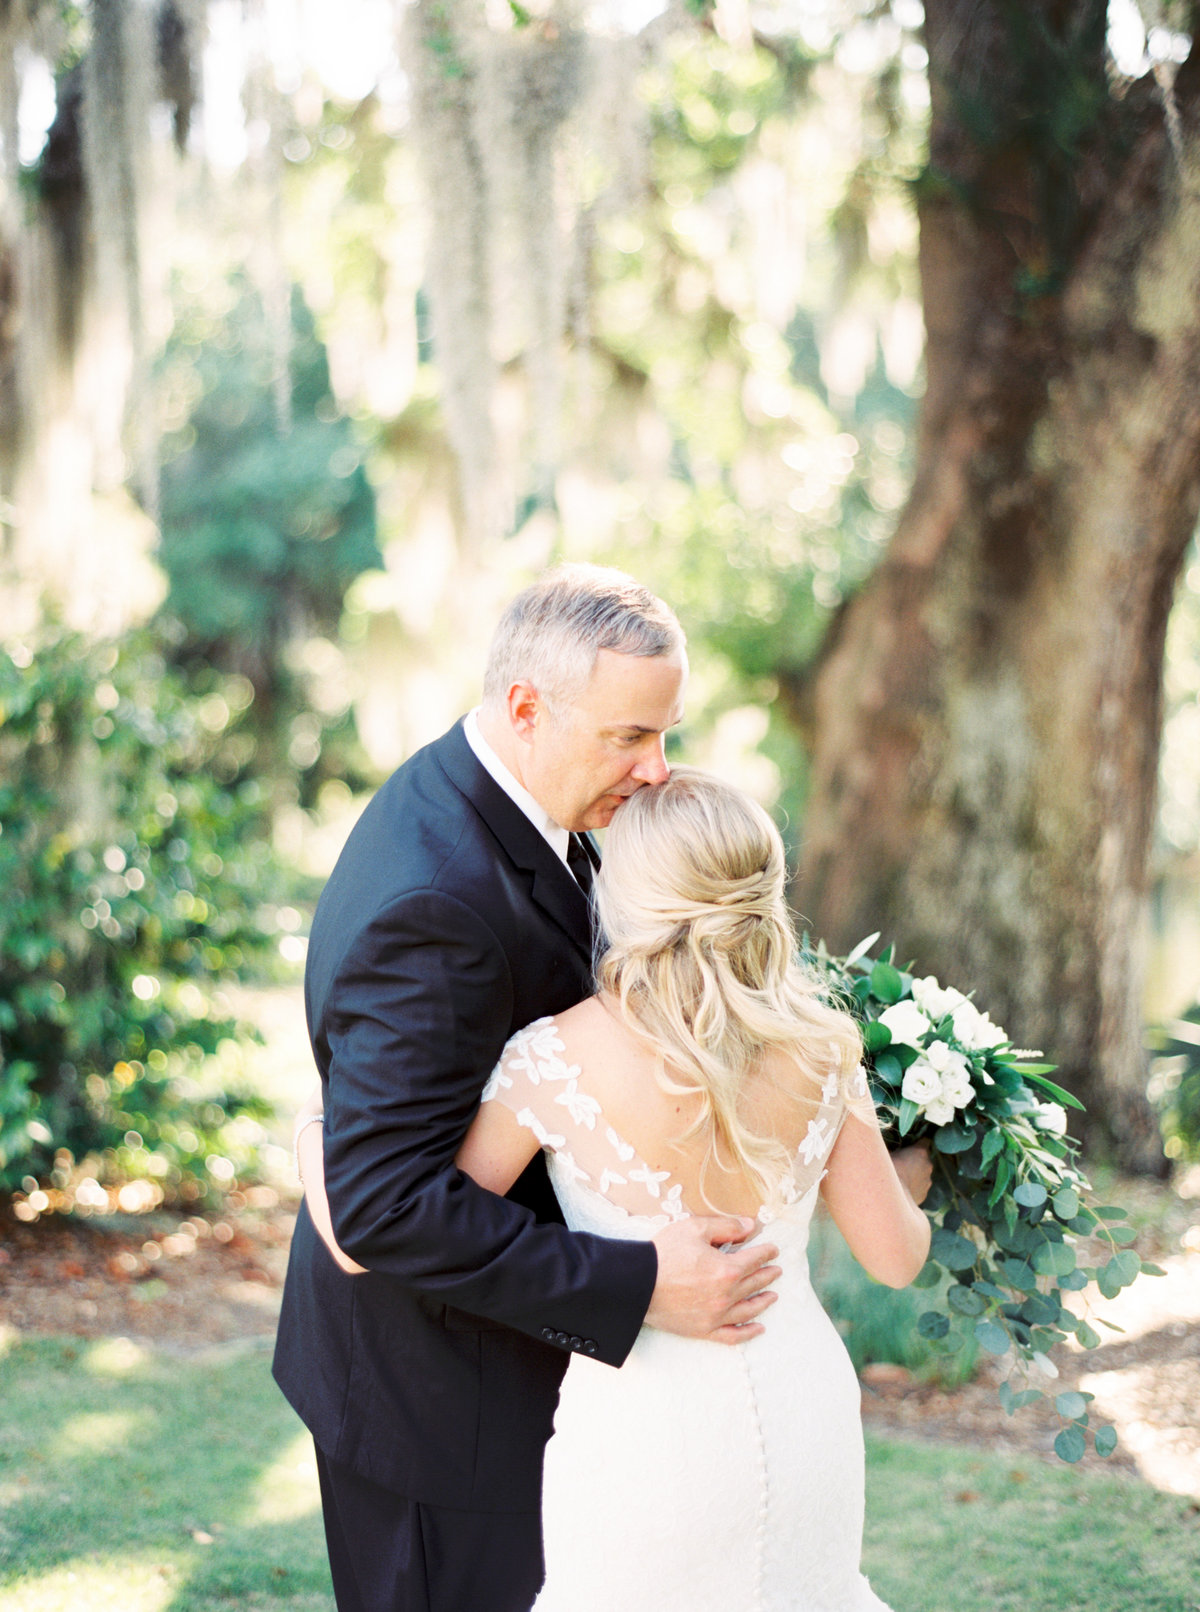 Charleston Wedding Photographer - Mary Claire Photography-9-2